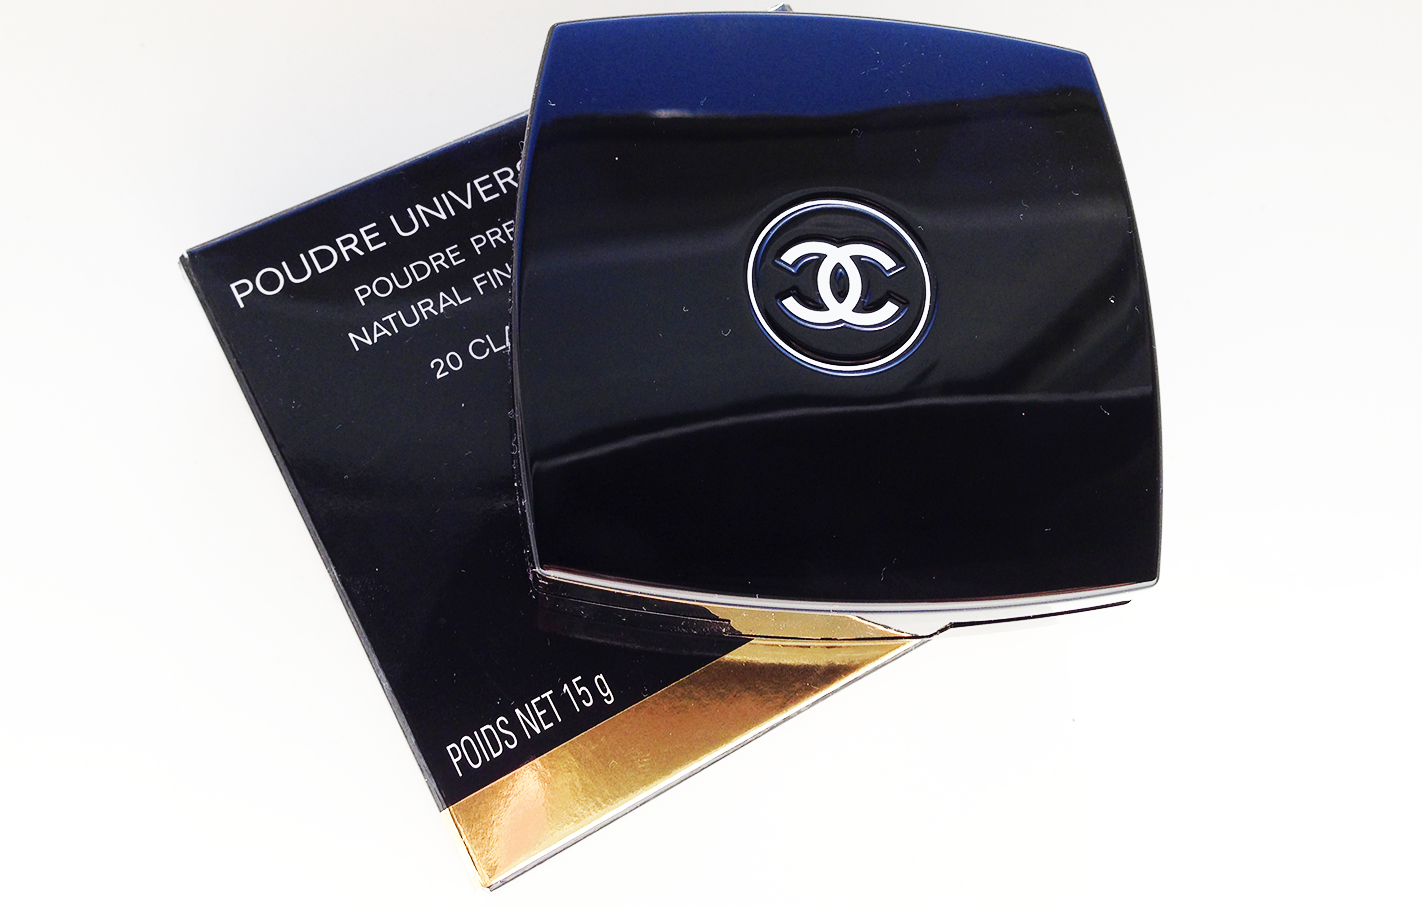 Review: Chanel Poudre Universelle Compacte